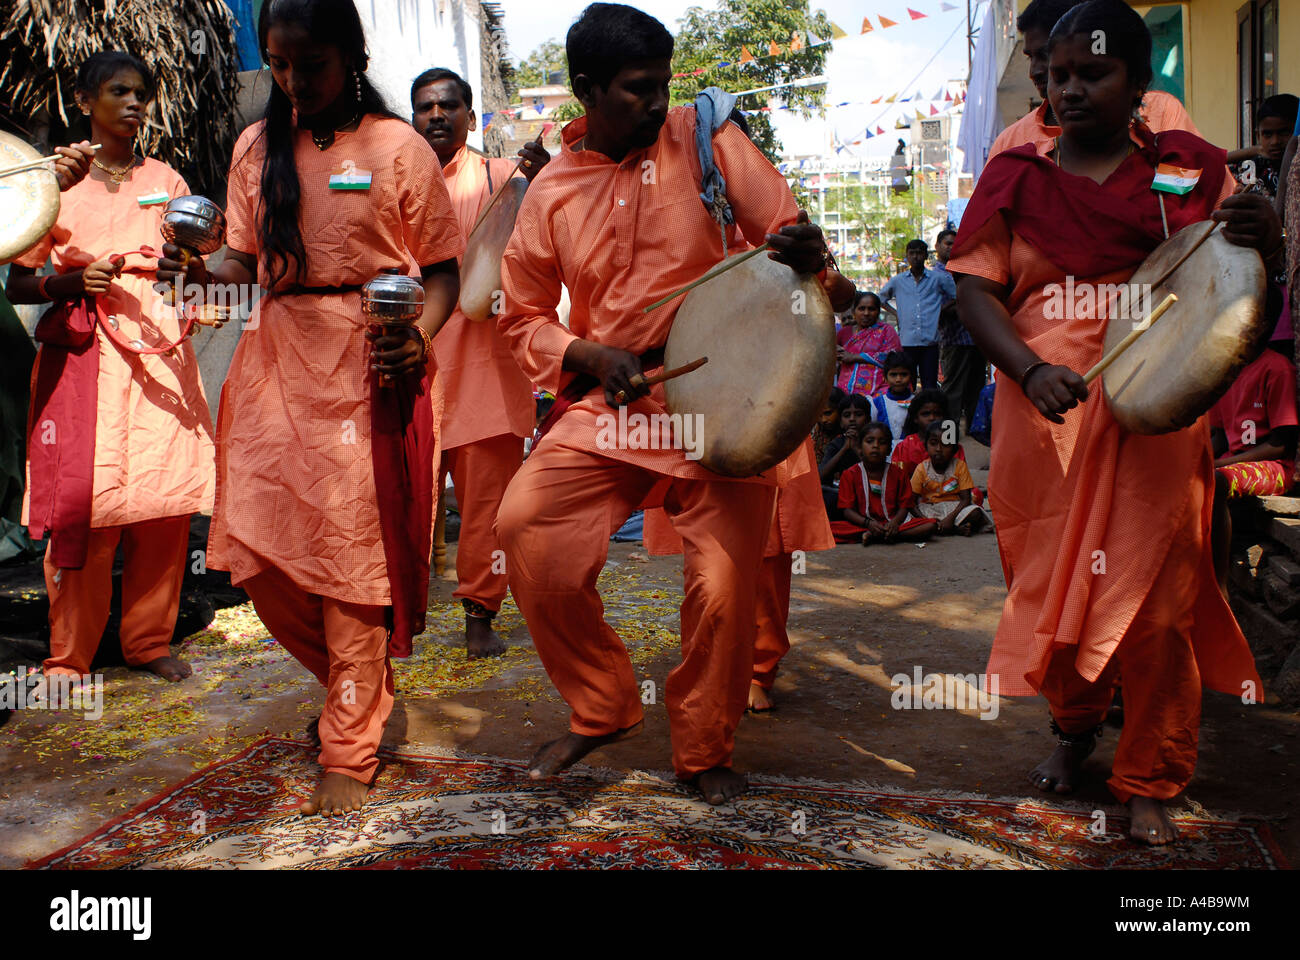 Stock image of traditional Dalit drummers dancers and drums in Daspuram slum in Chennai Tamil Nadu India - Stock Image